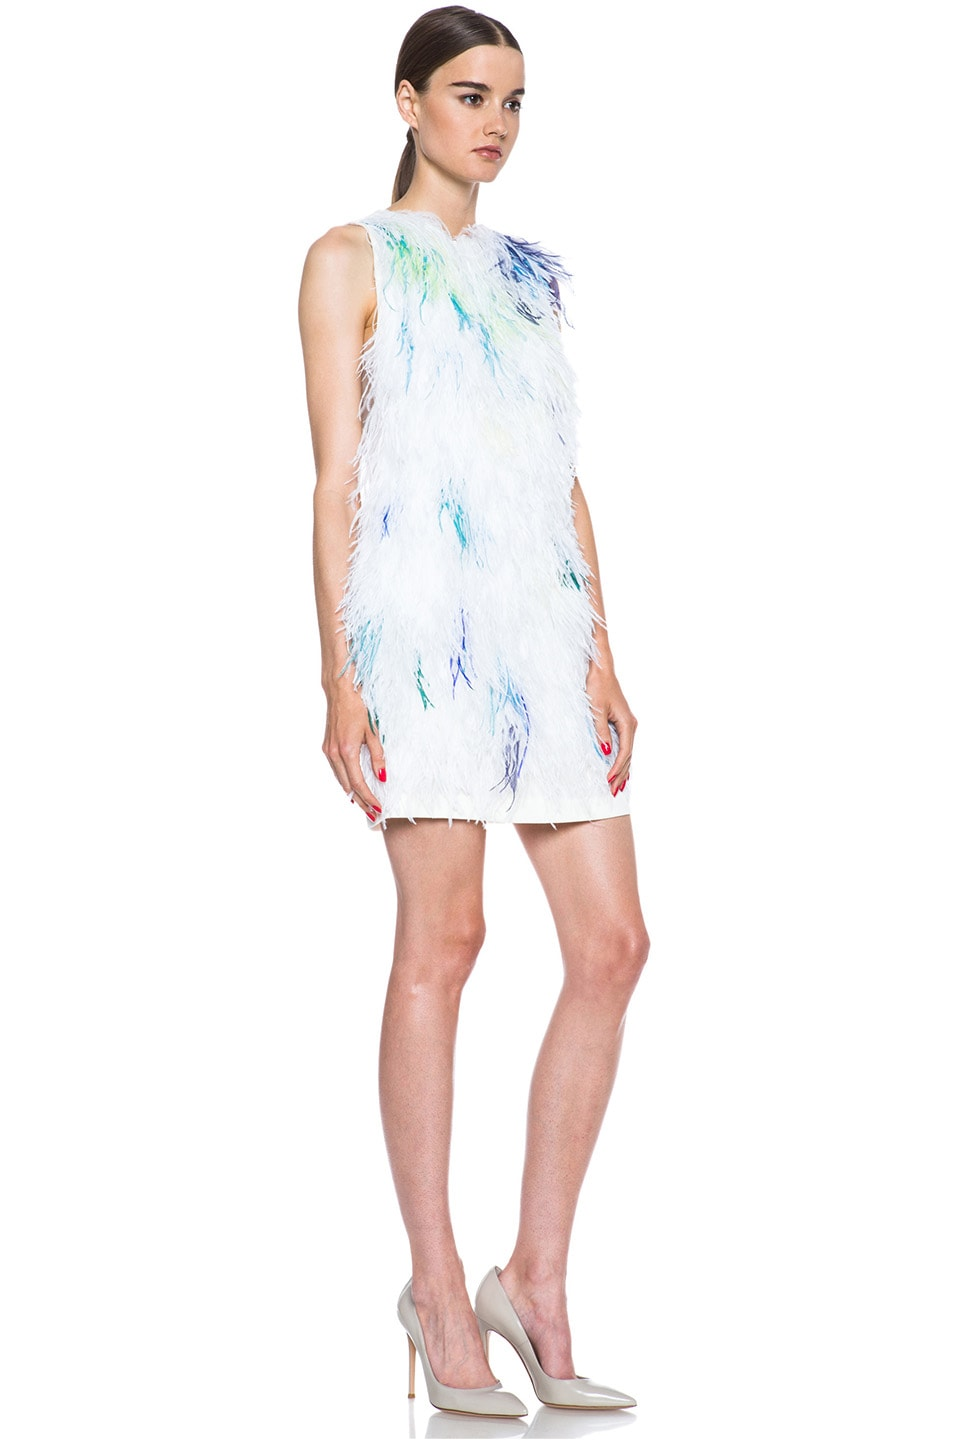 Image 3 of 3.1 phillip lim Plume Acetate-Blend Shift Dress in Ivory